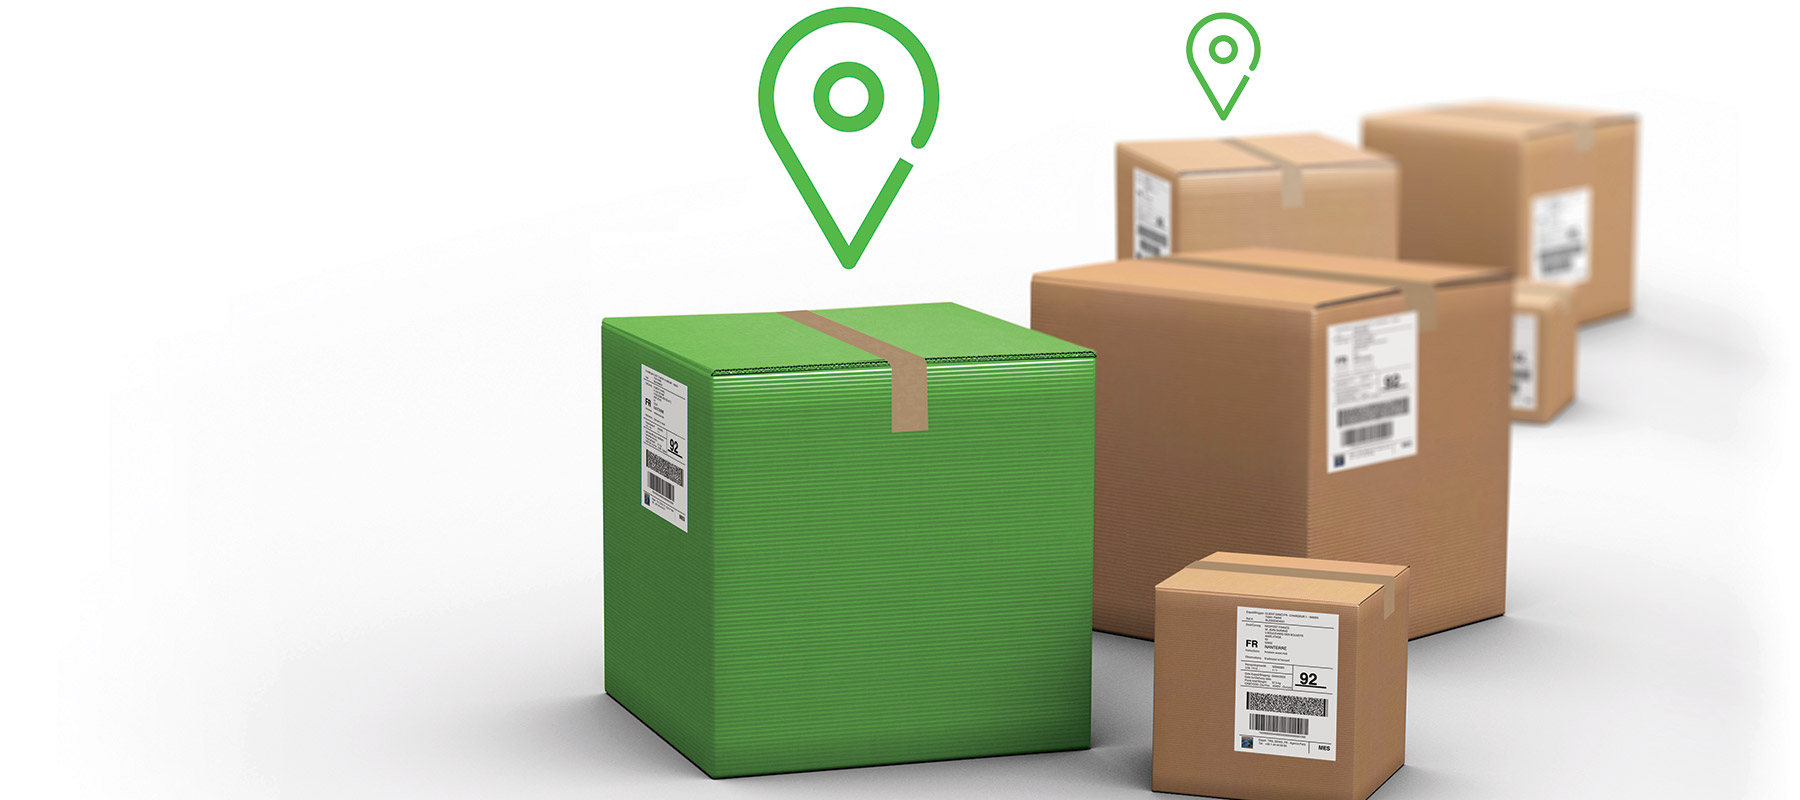 What -guides -do- newbies -need -for- e-commerce -shipping-part2-1